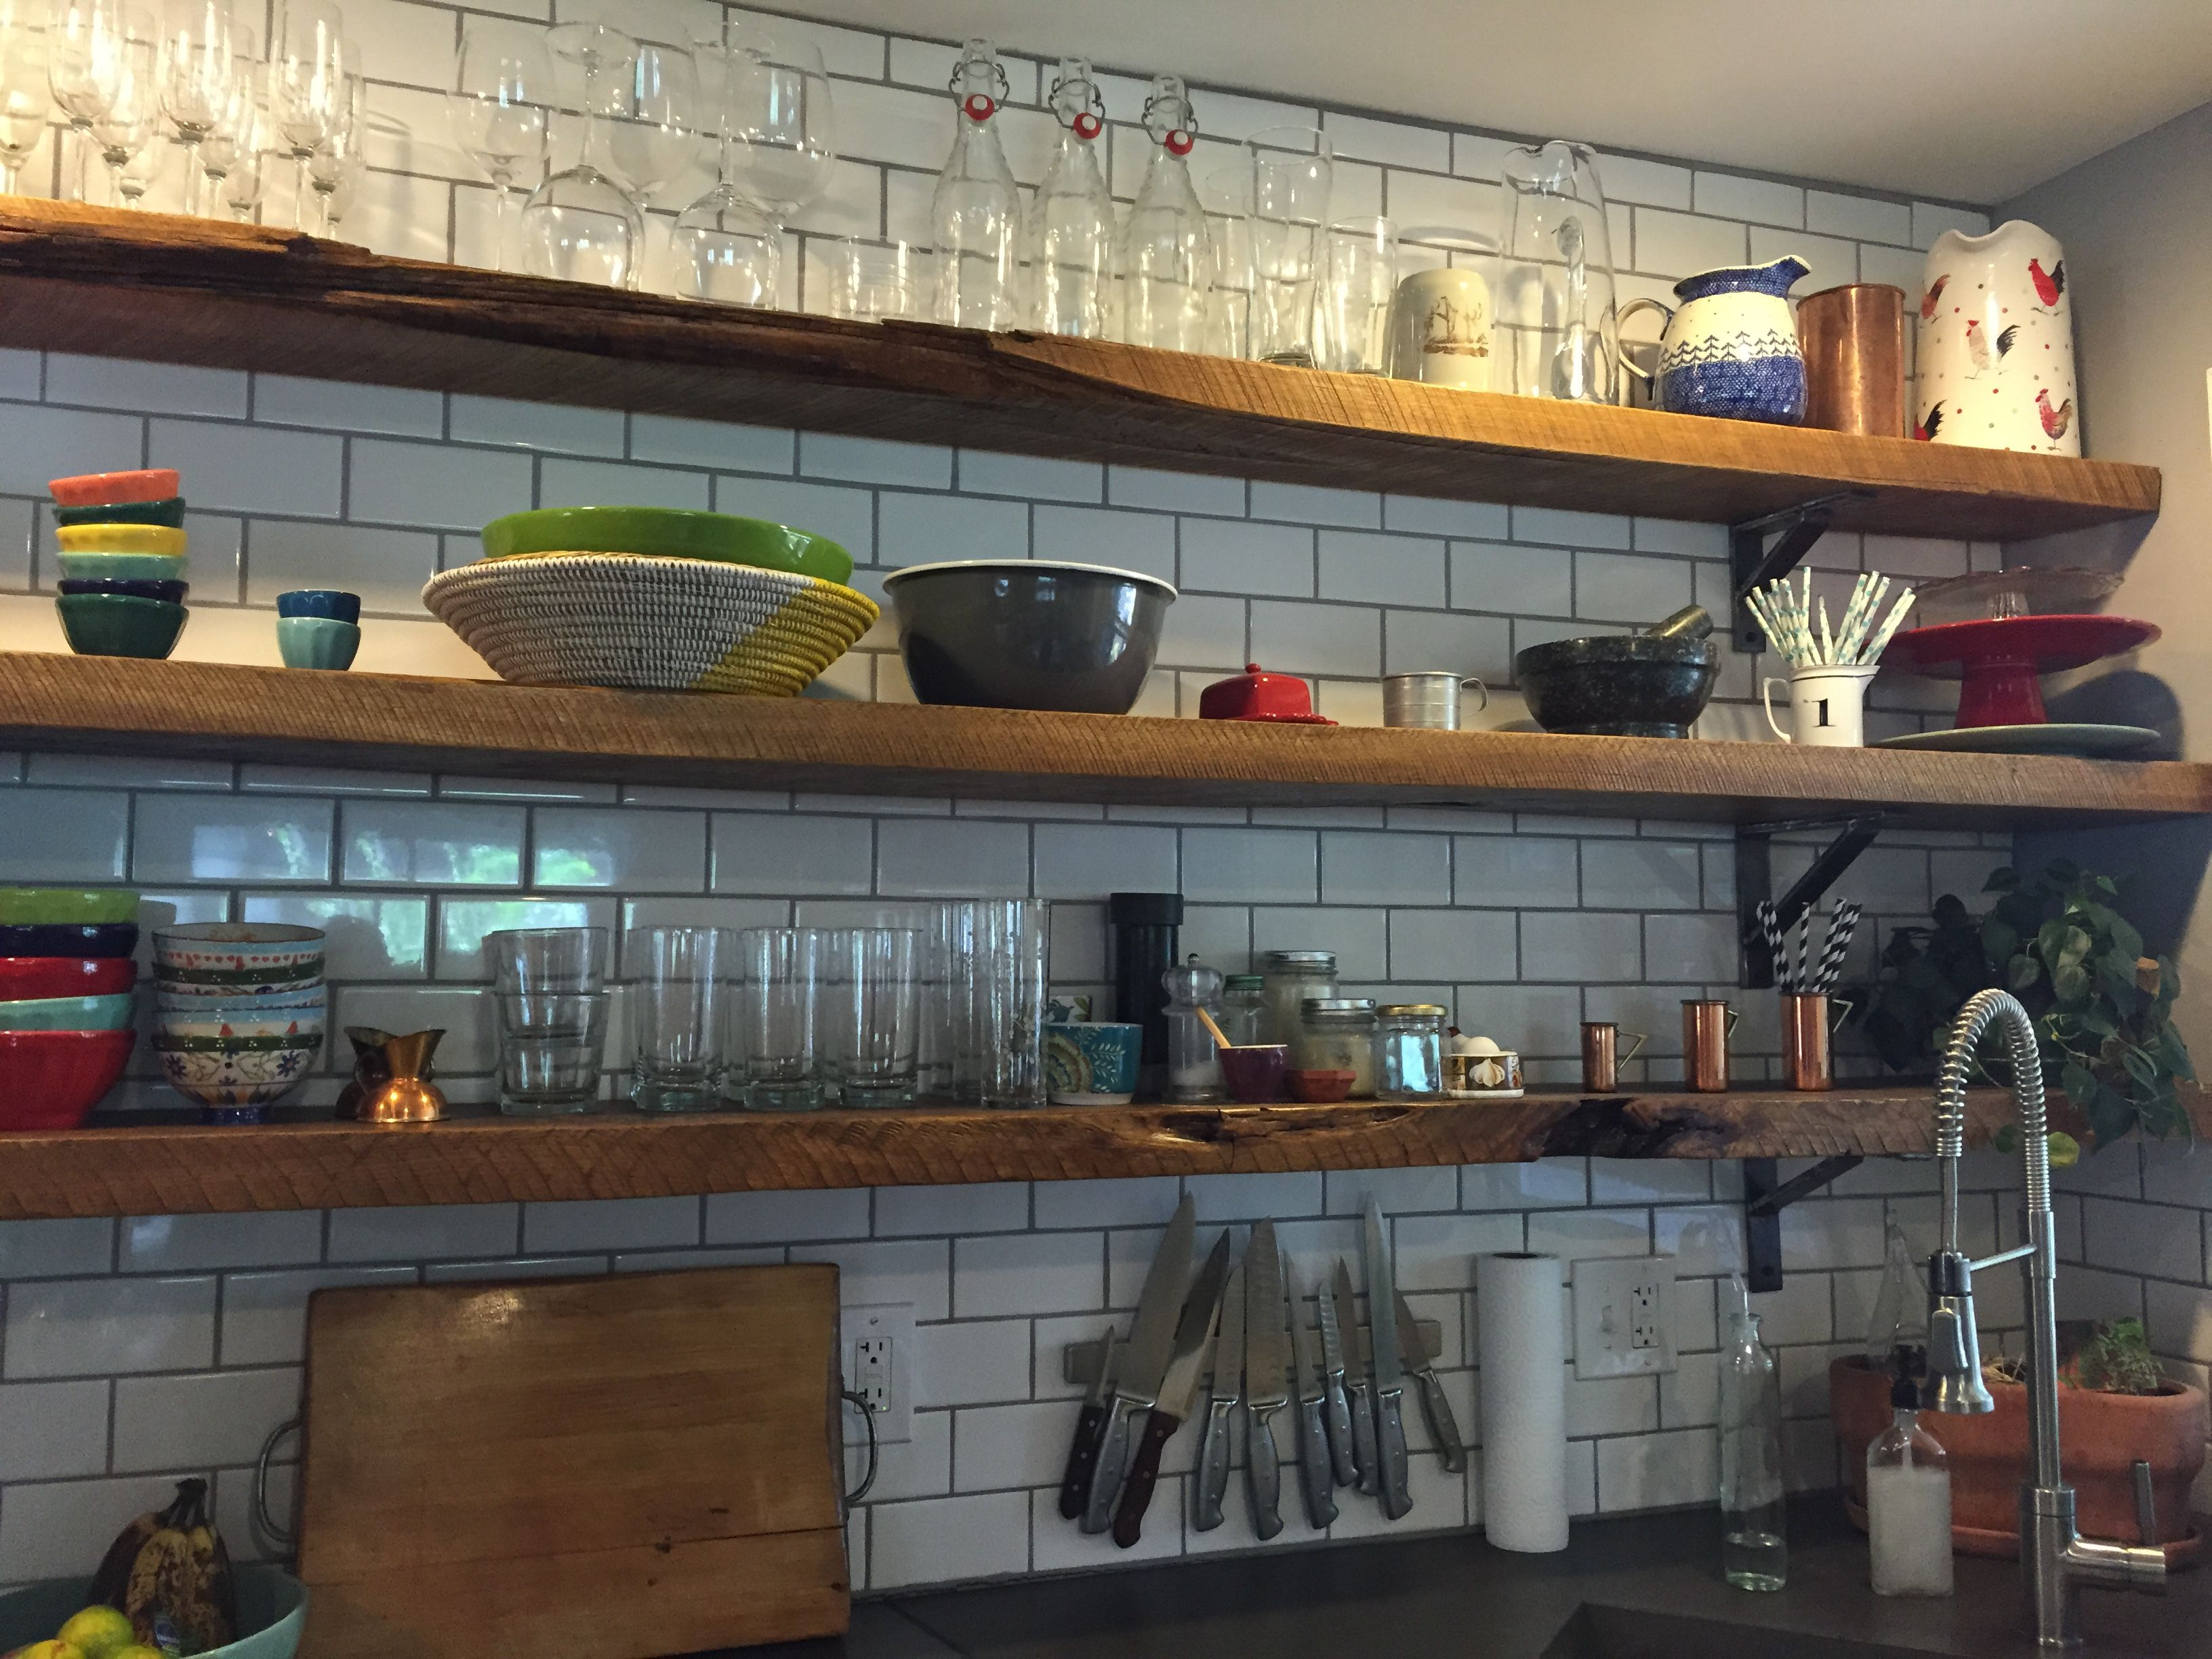 Love the white tile and wood shelves